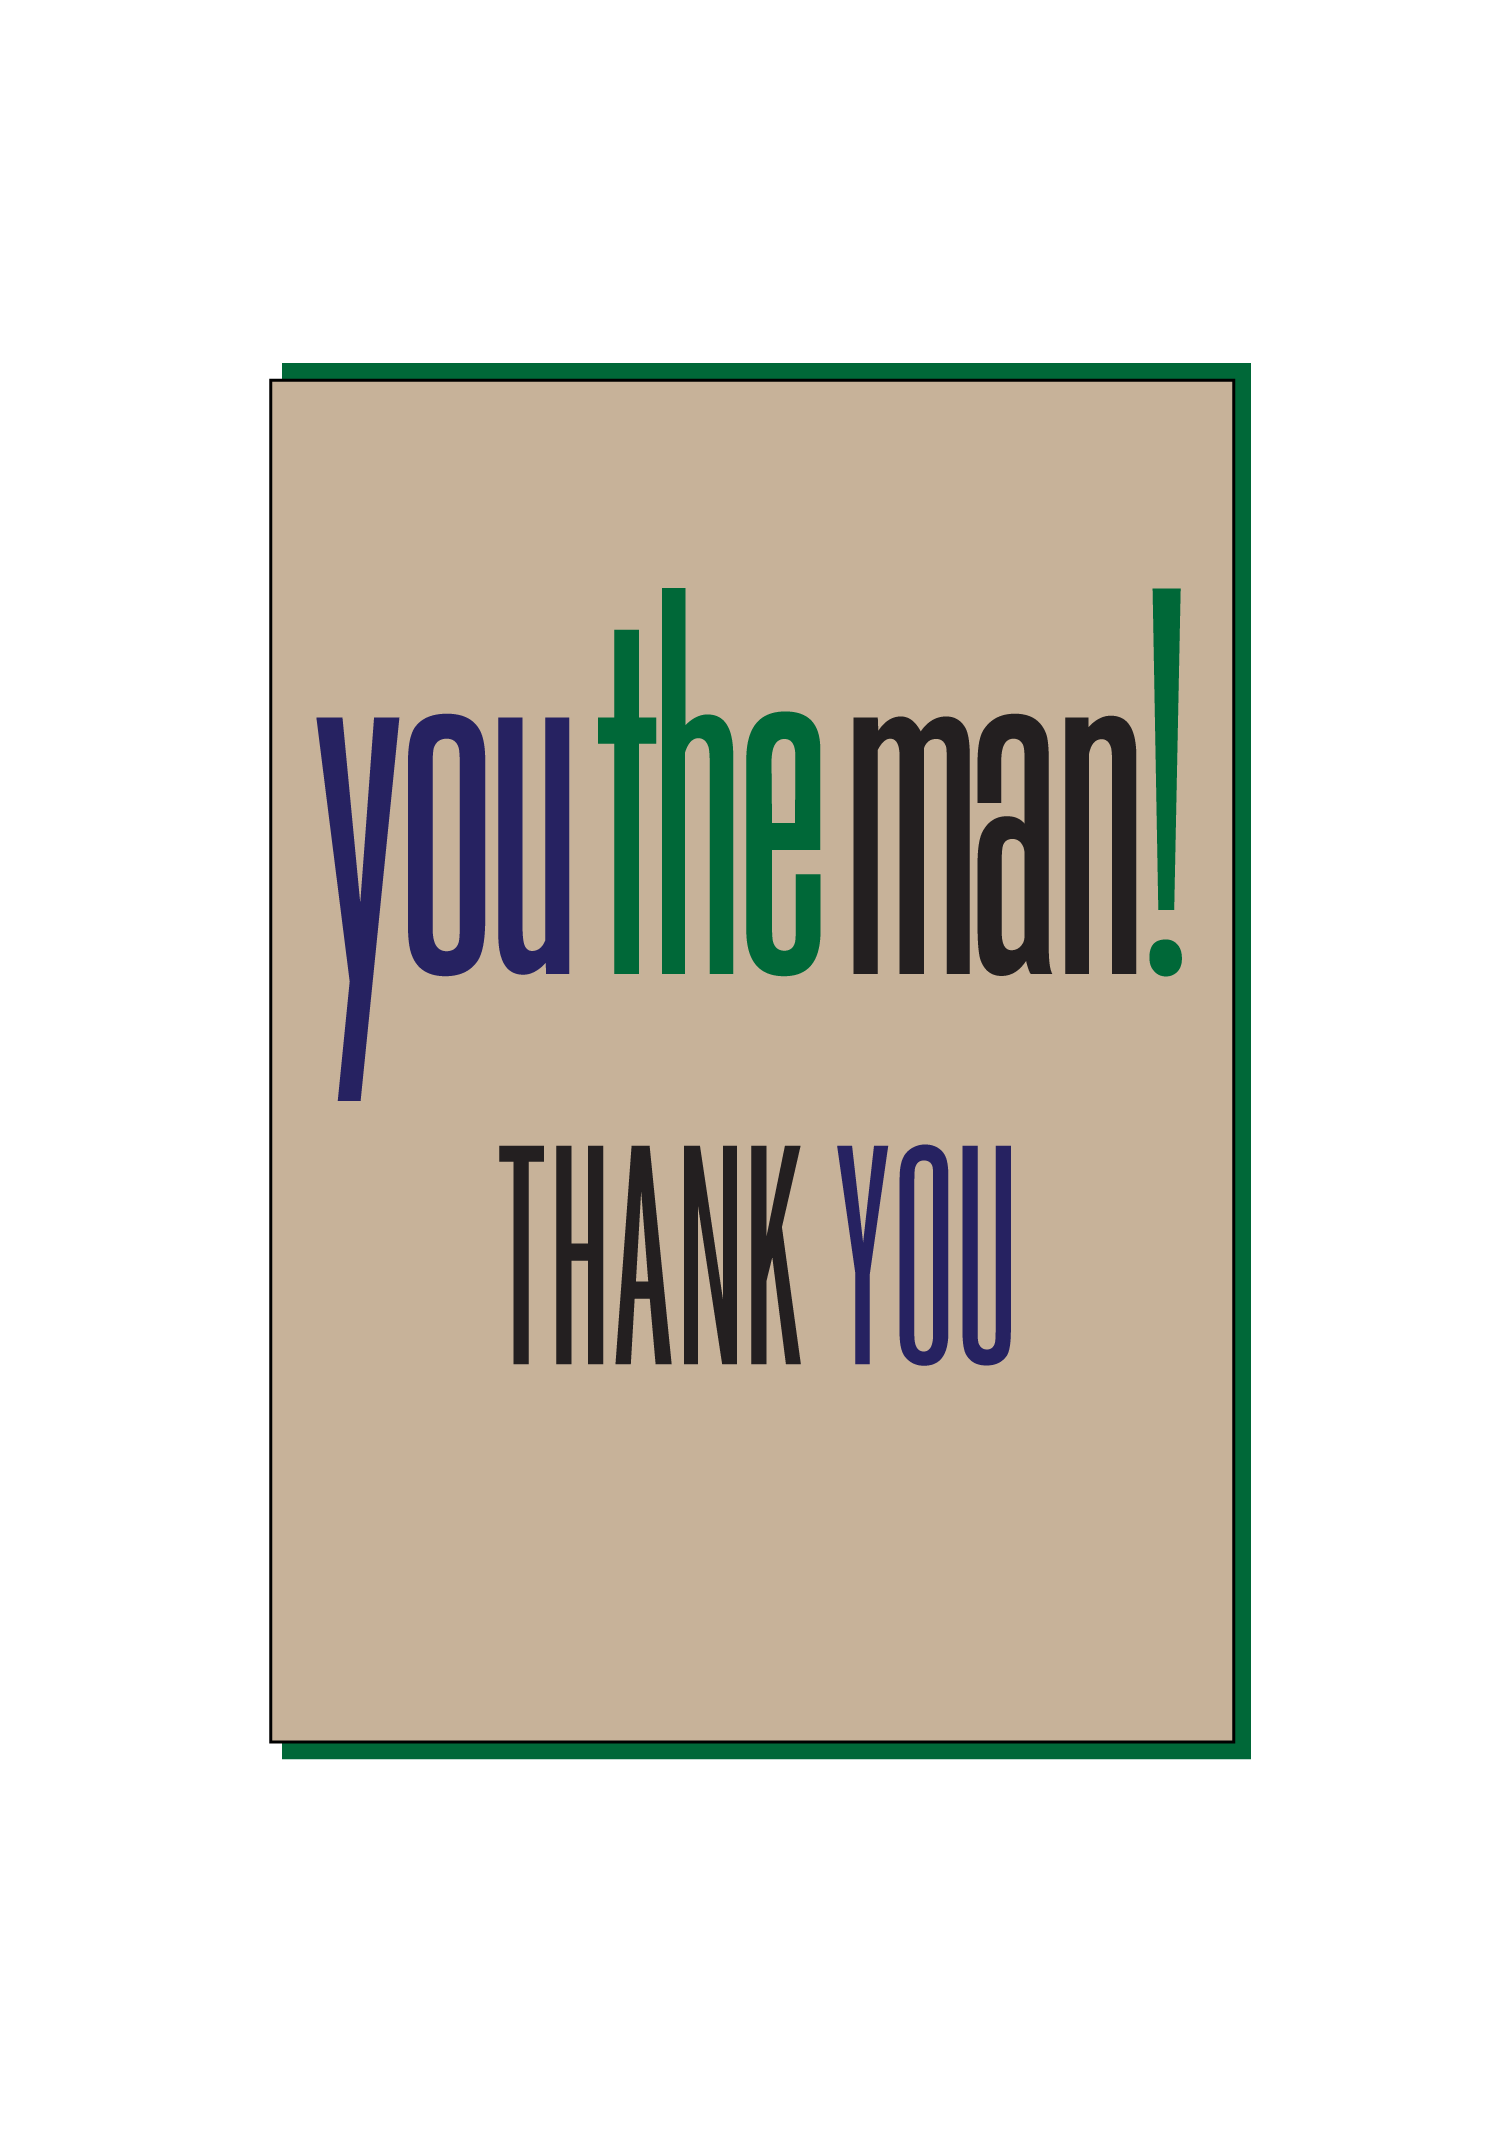 Manly Thank You Card Social Butterfly Designs